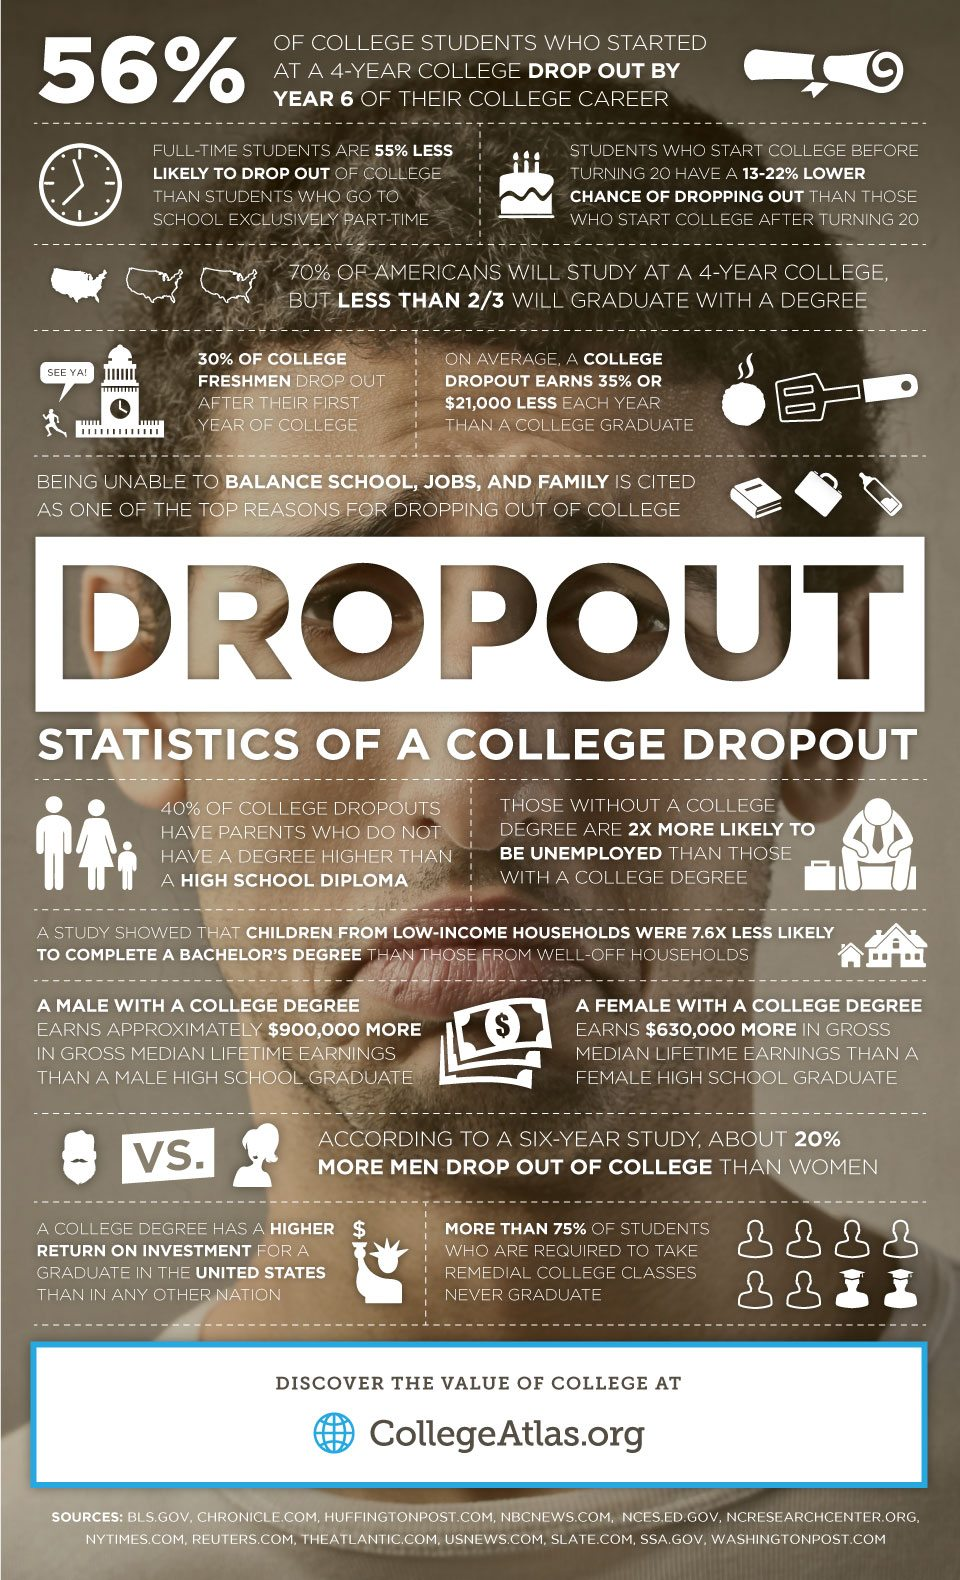 U.S. college dropout rate and other dropout statistics answer the question, why do students dropout of college?